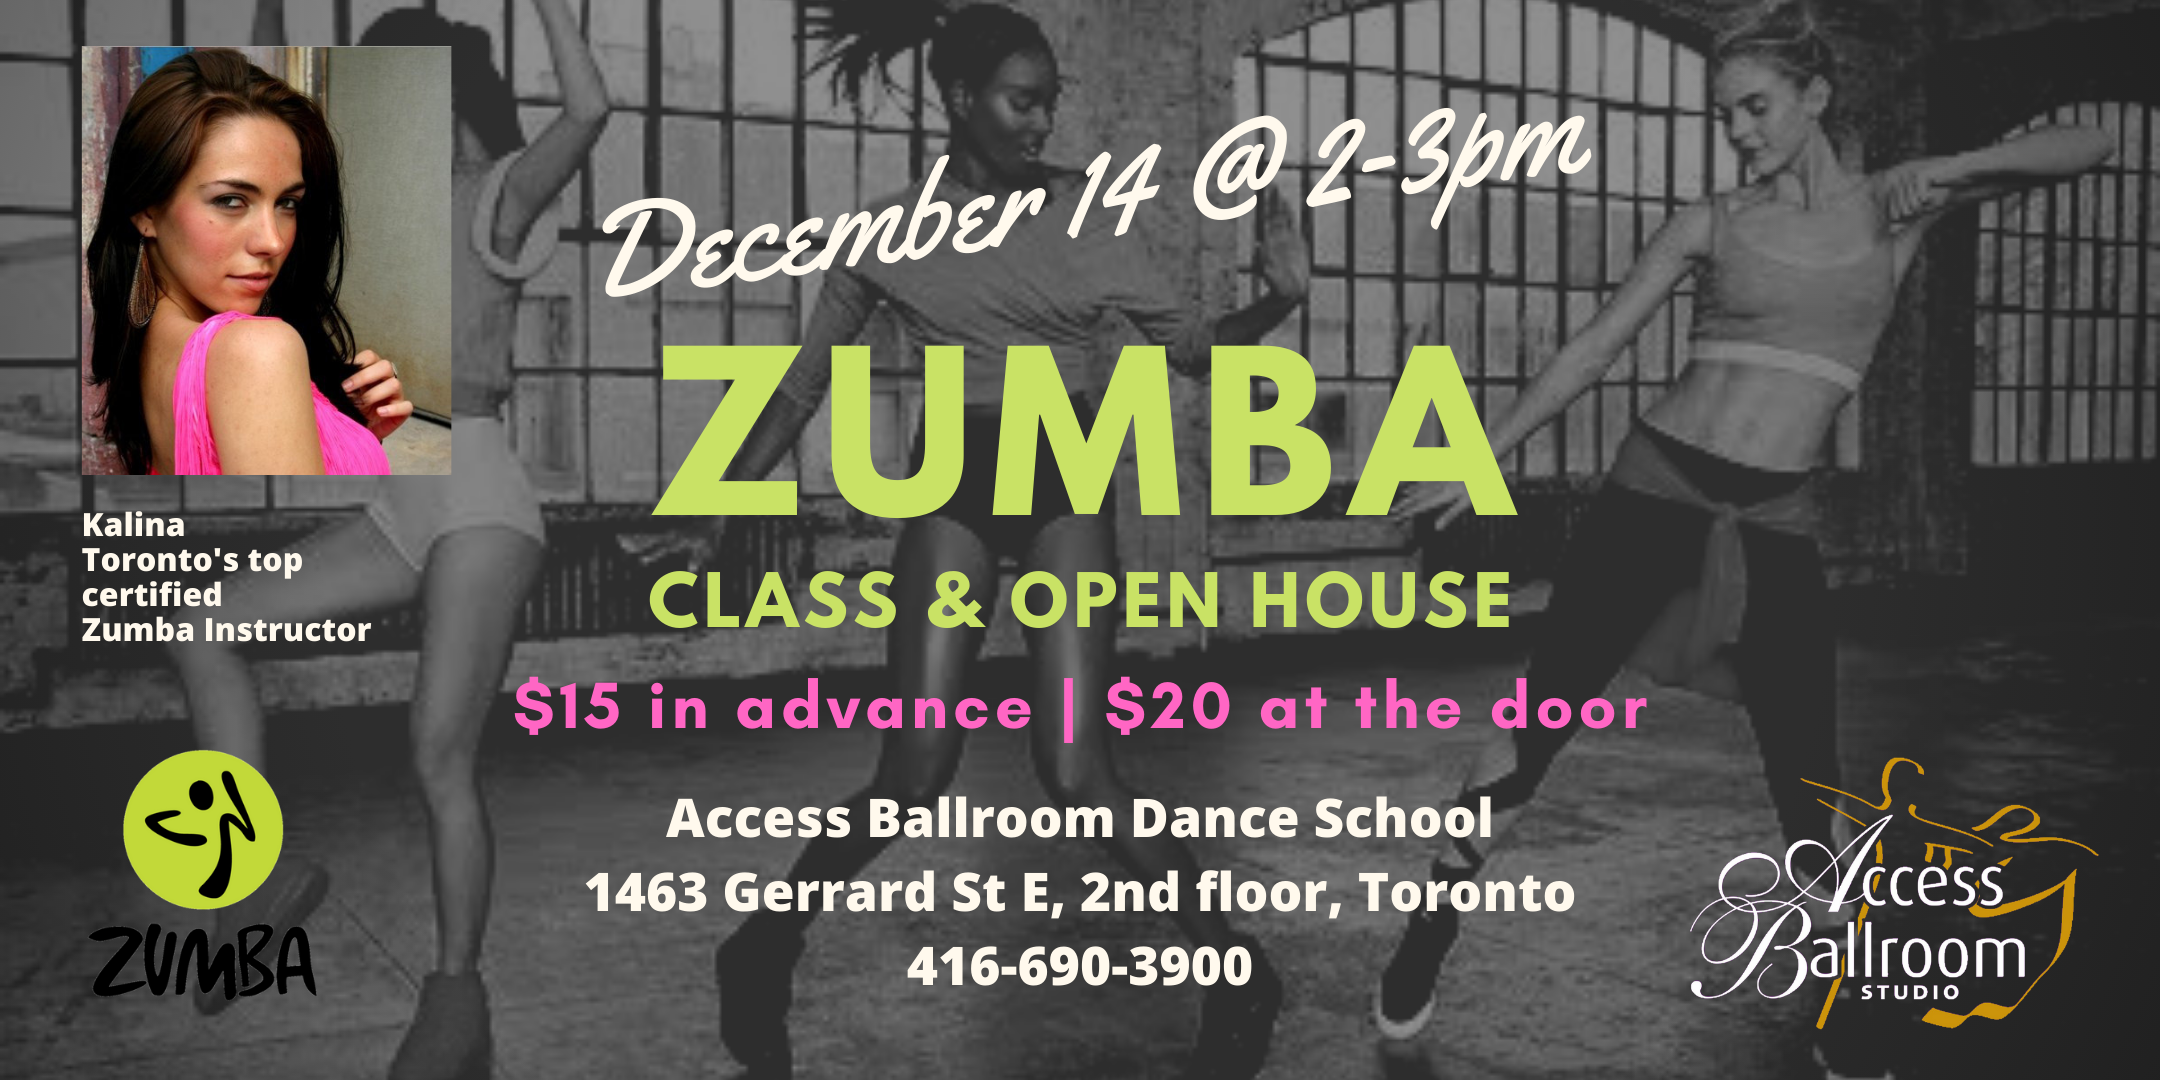 Zumba Class and Open House Toronto Access Ballroom